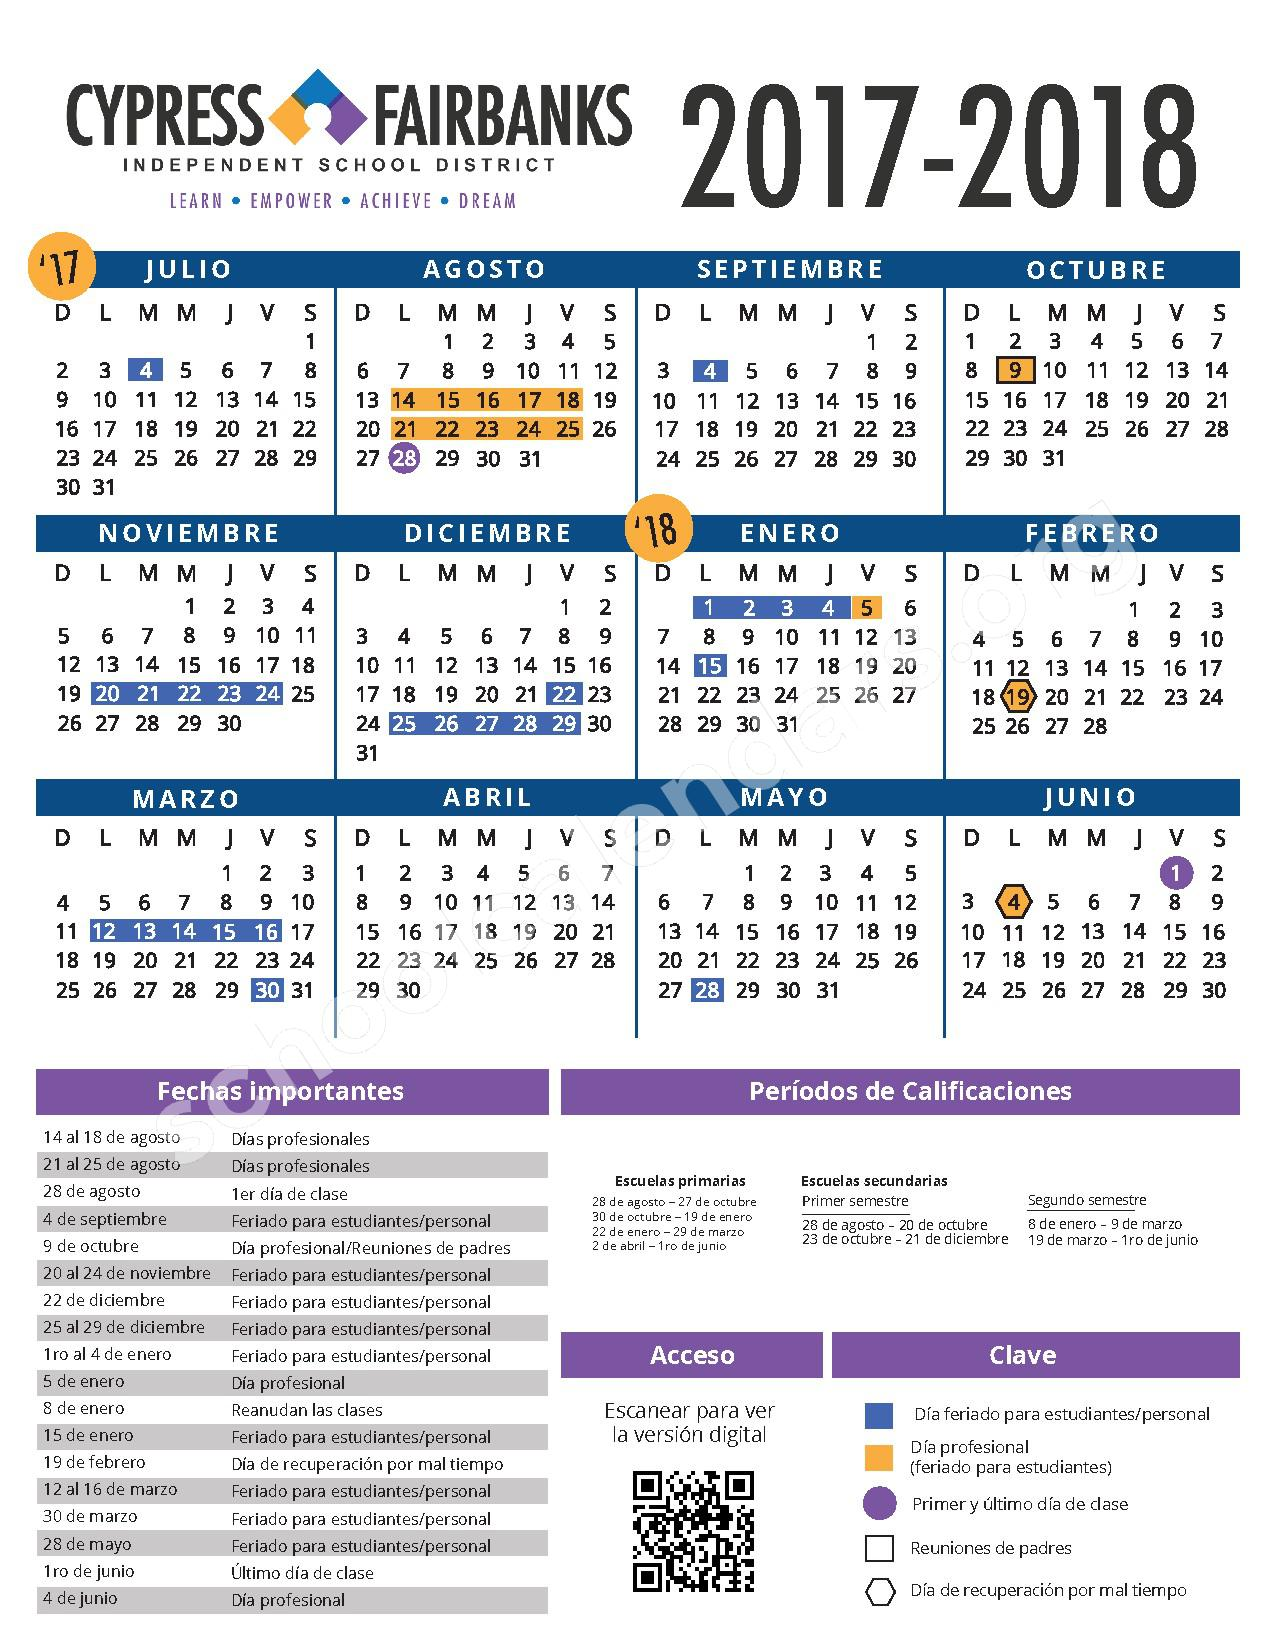 2017 - 2018 Calendario Escolar – Cypress-Fairbanks Independent School District – page 1